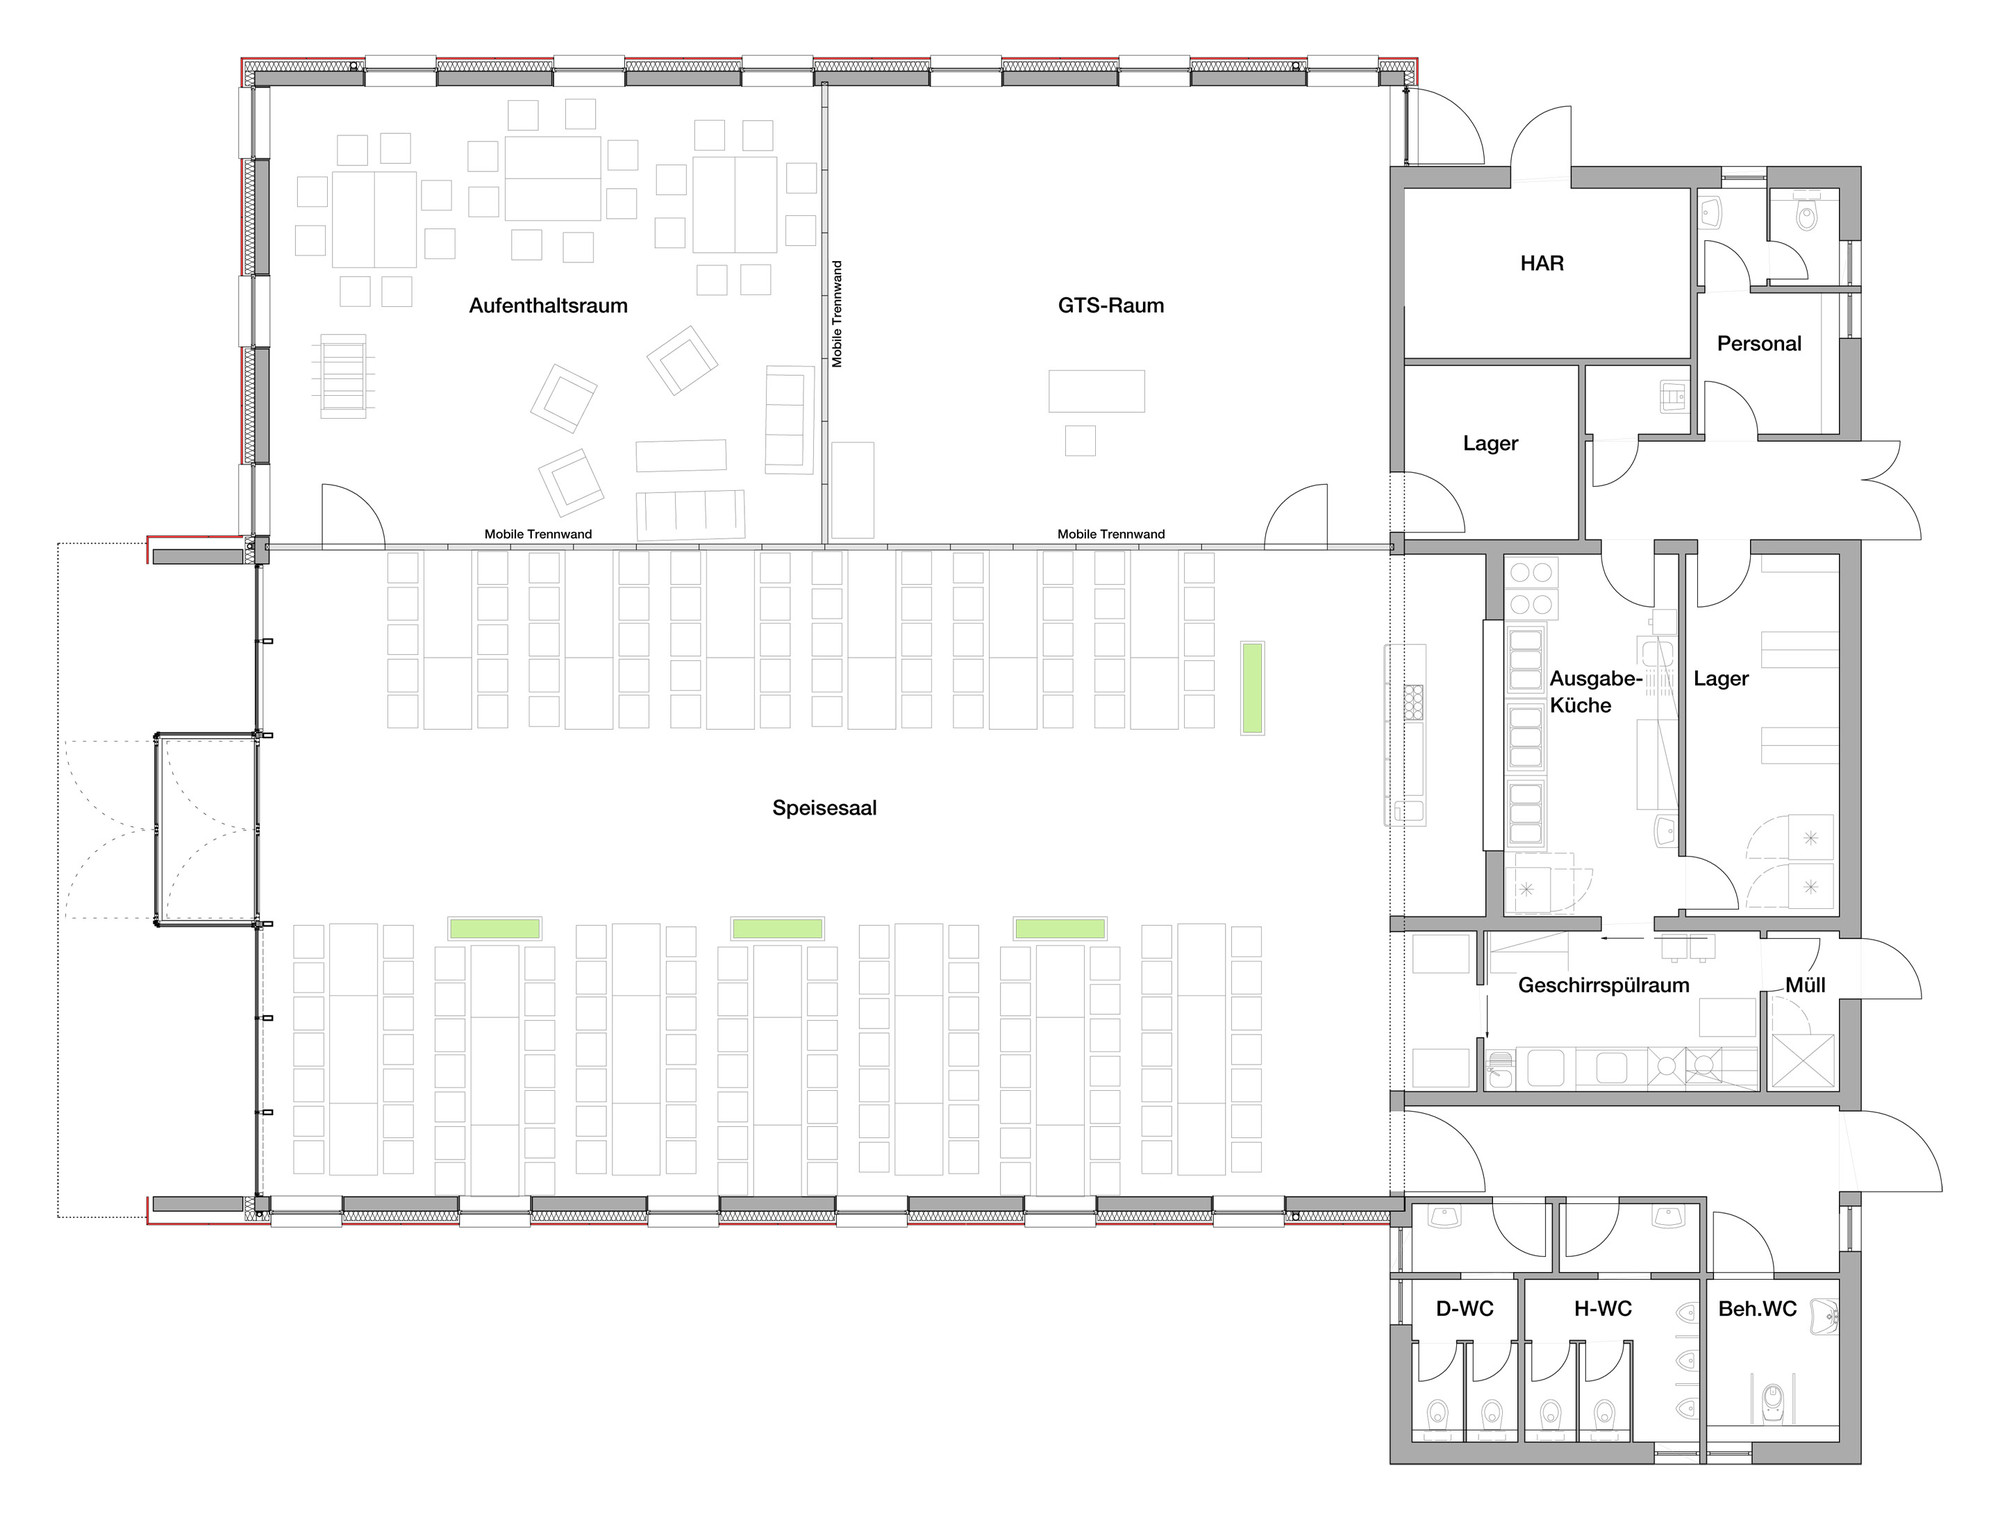 Commercial Kitchen Plan View